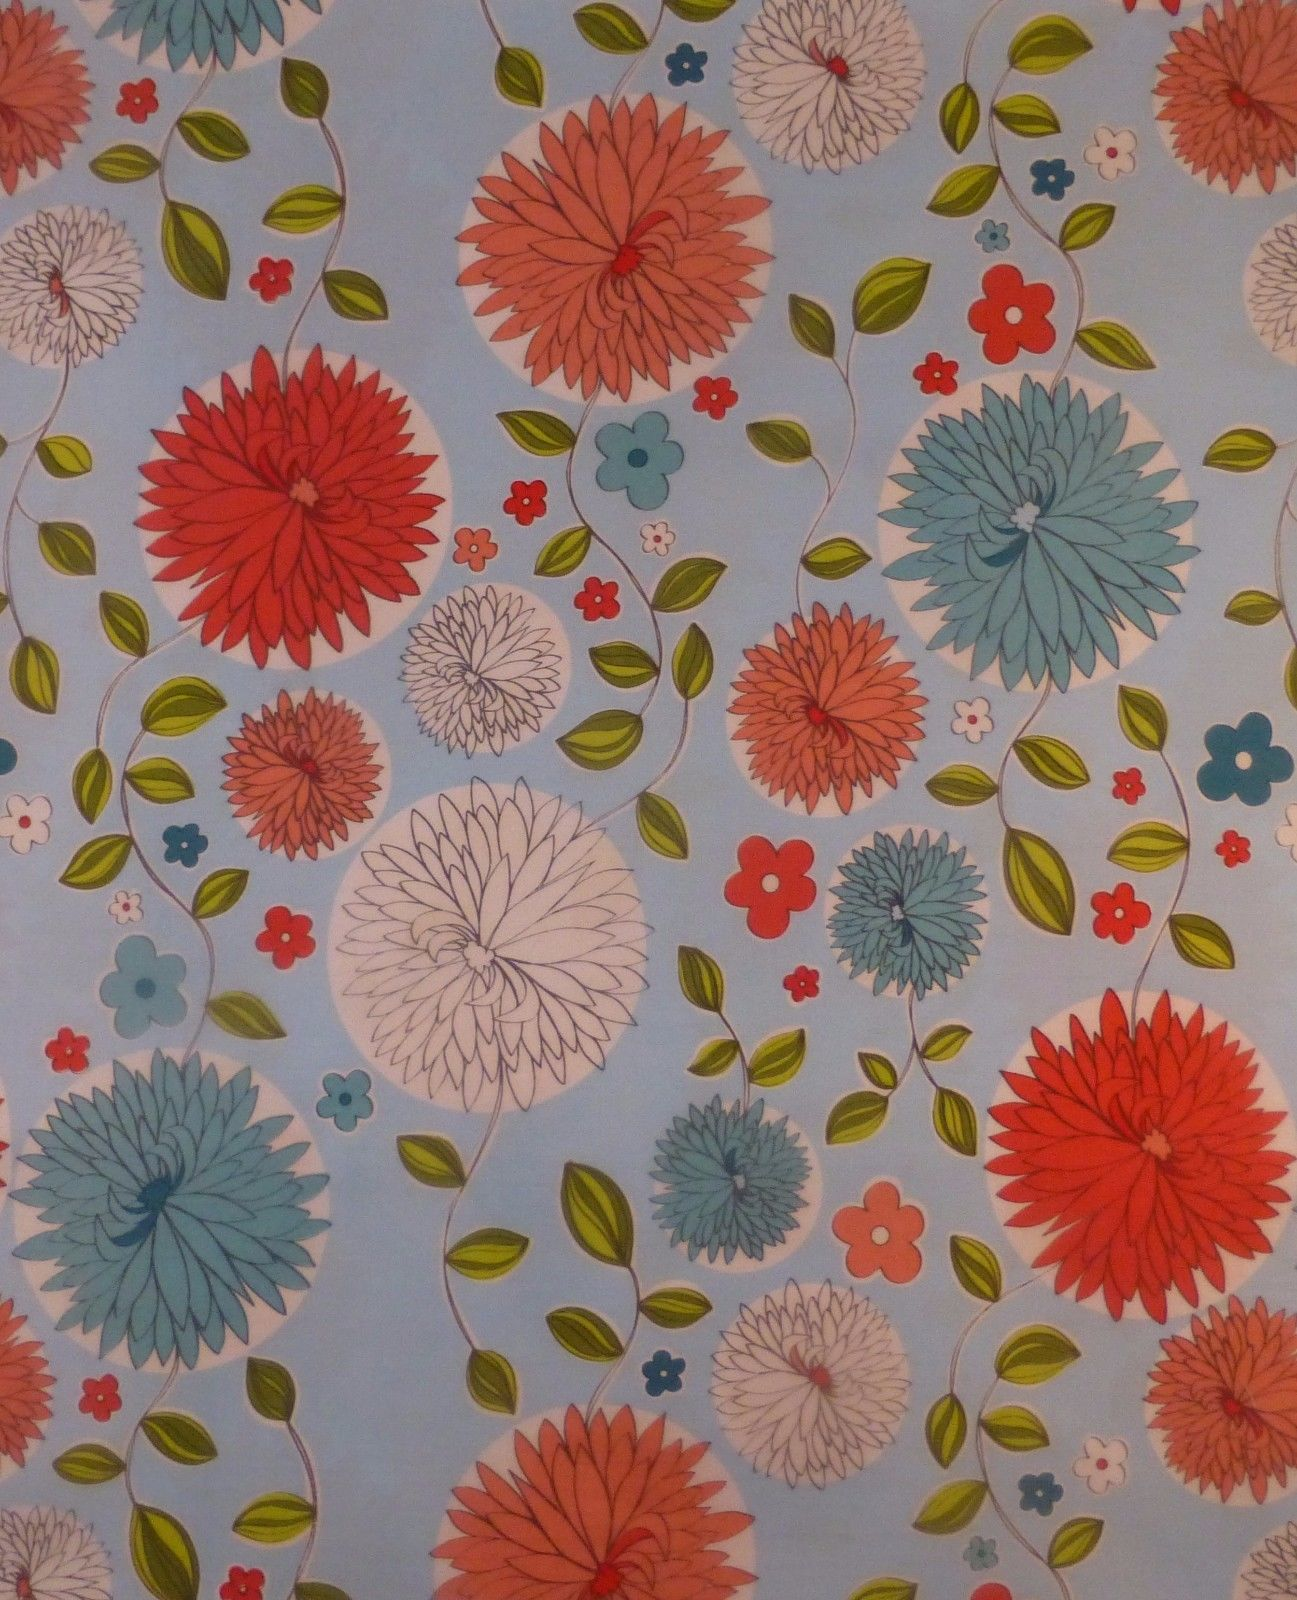 anthology fabrics floral by the yard floral cotton fabric home decor